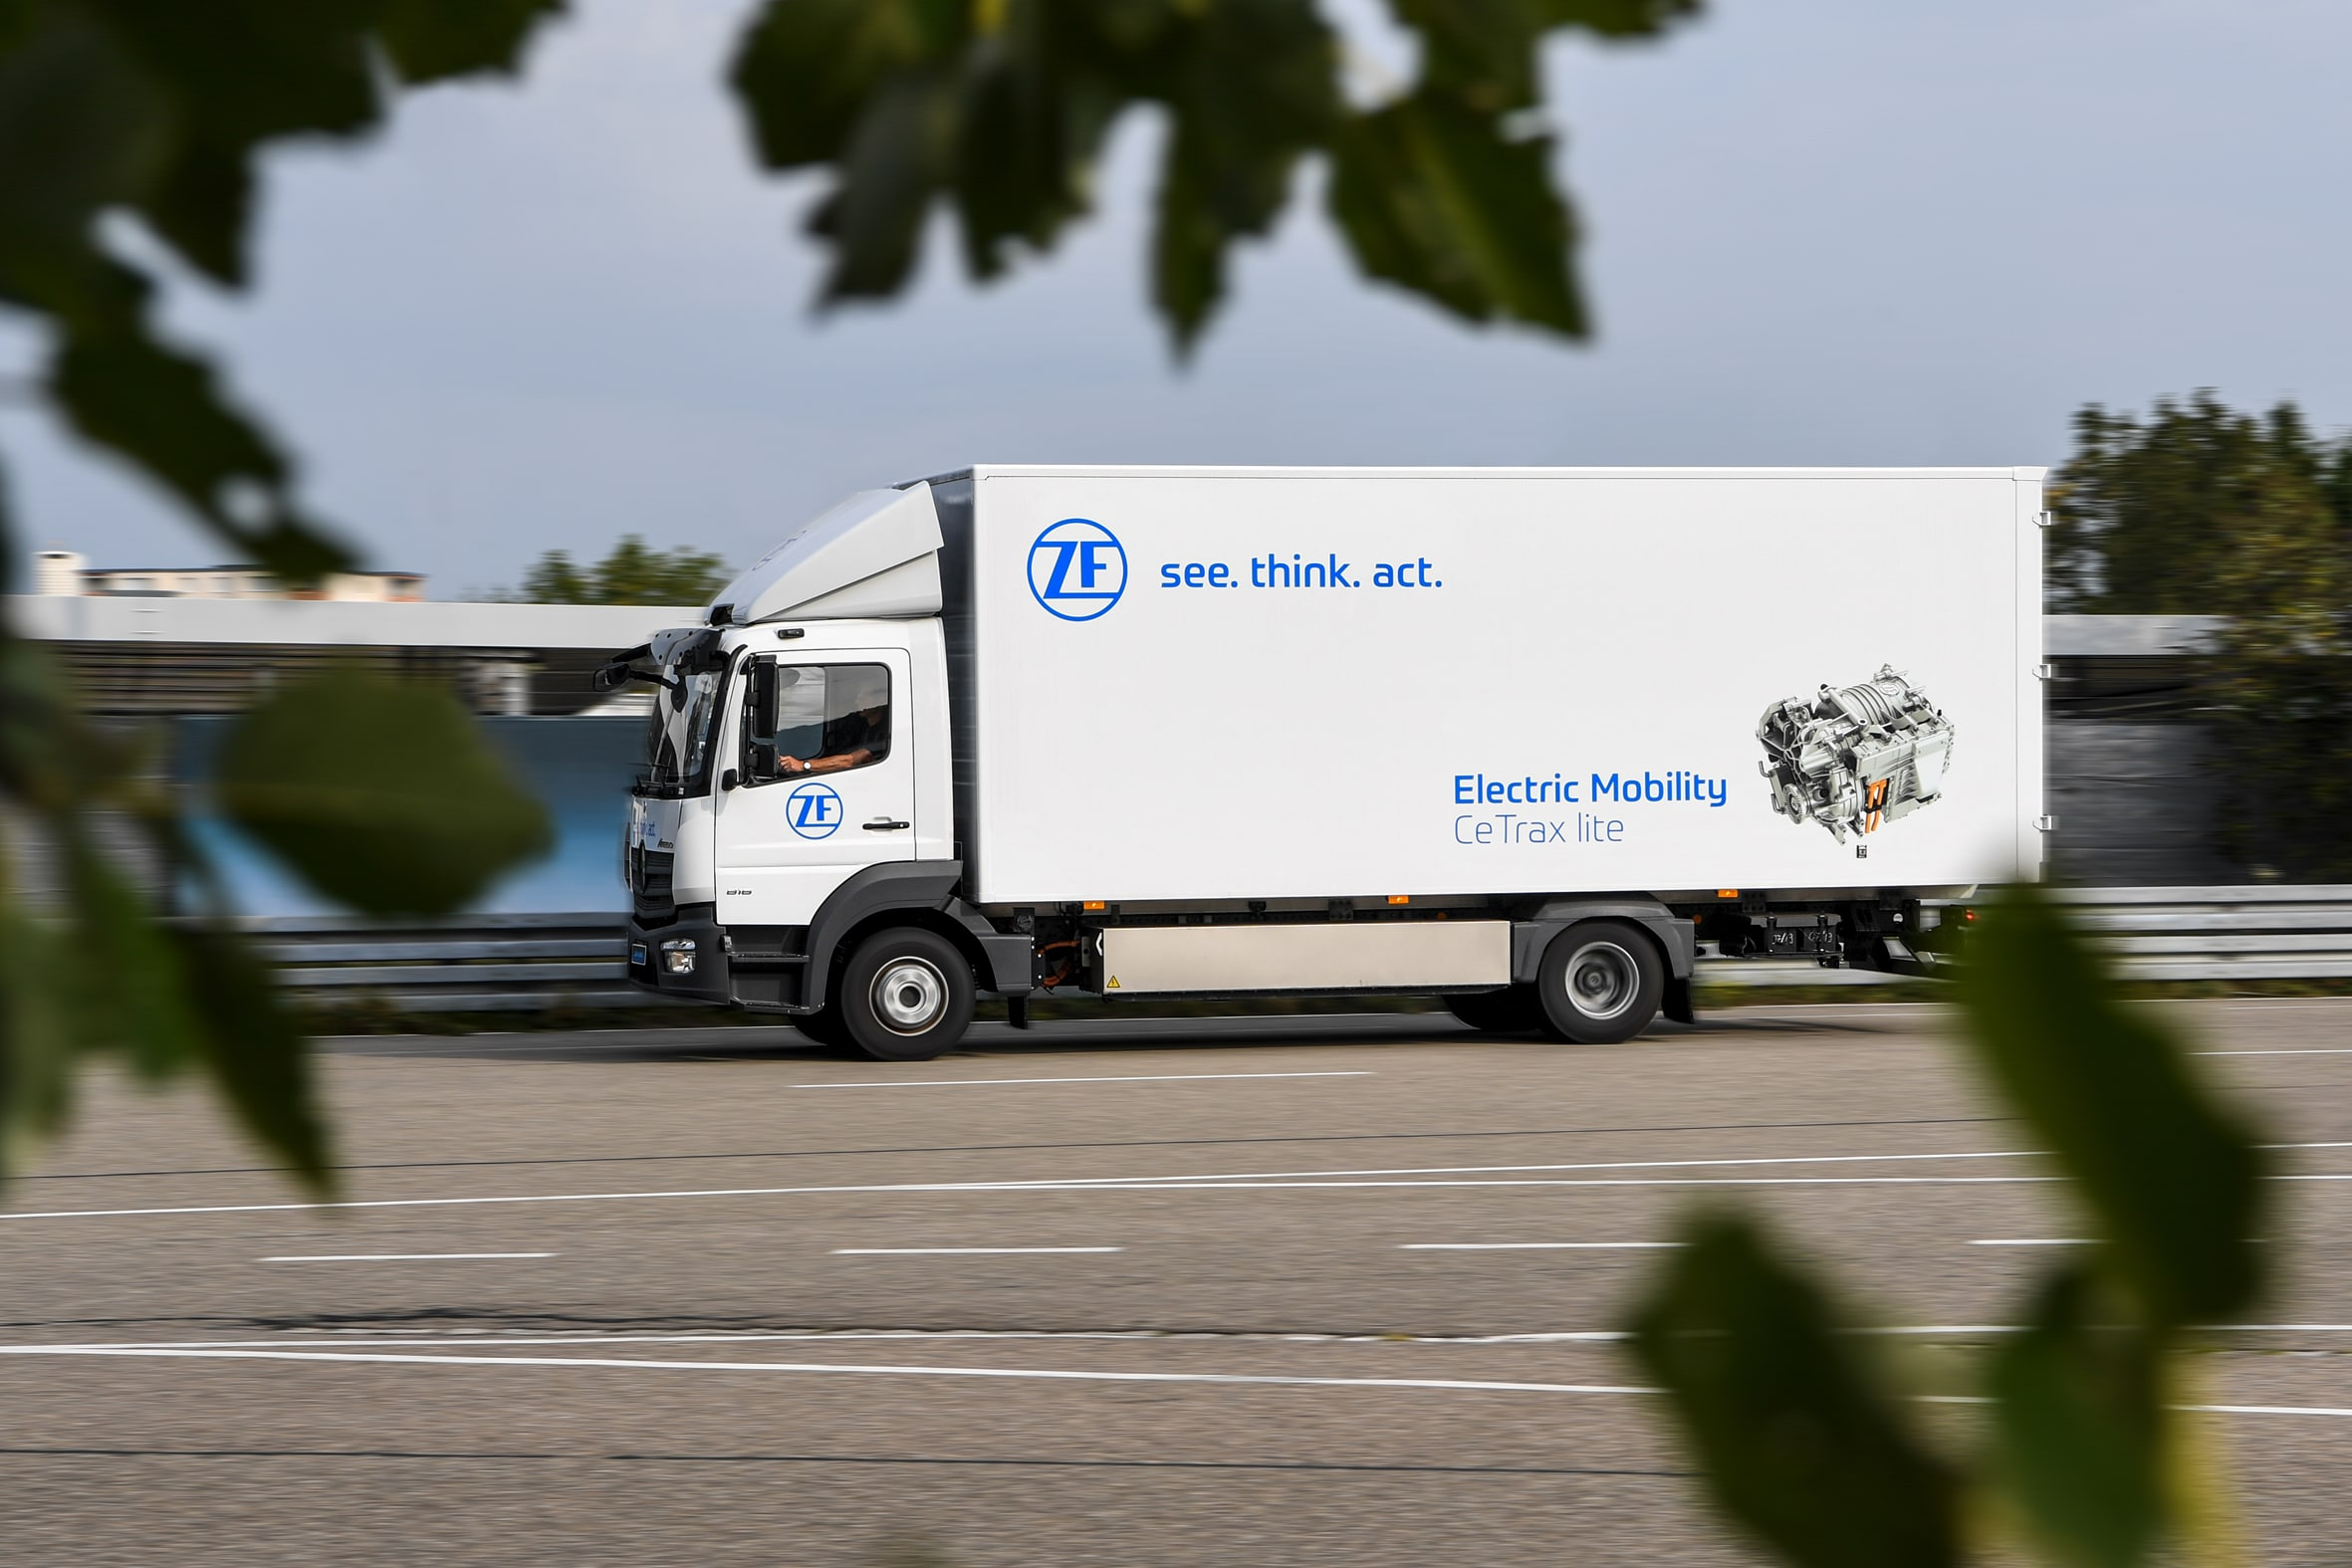 ZF's All-Electric Central Drive Solution: CeTrax Lite